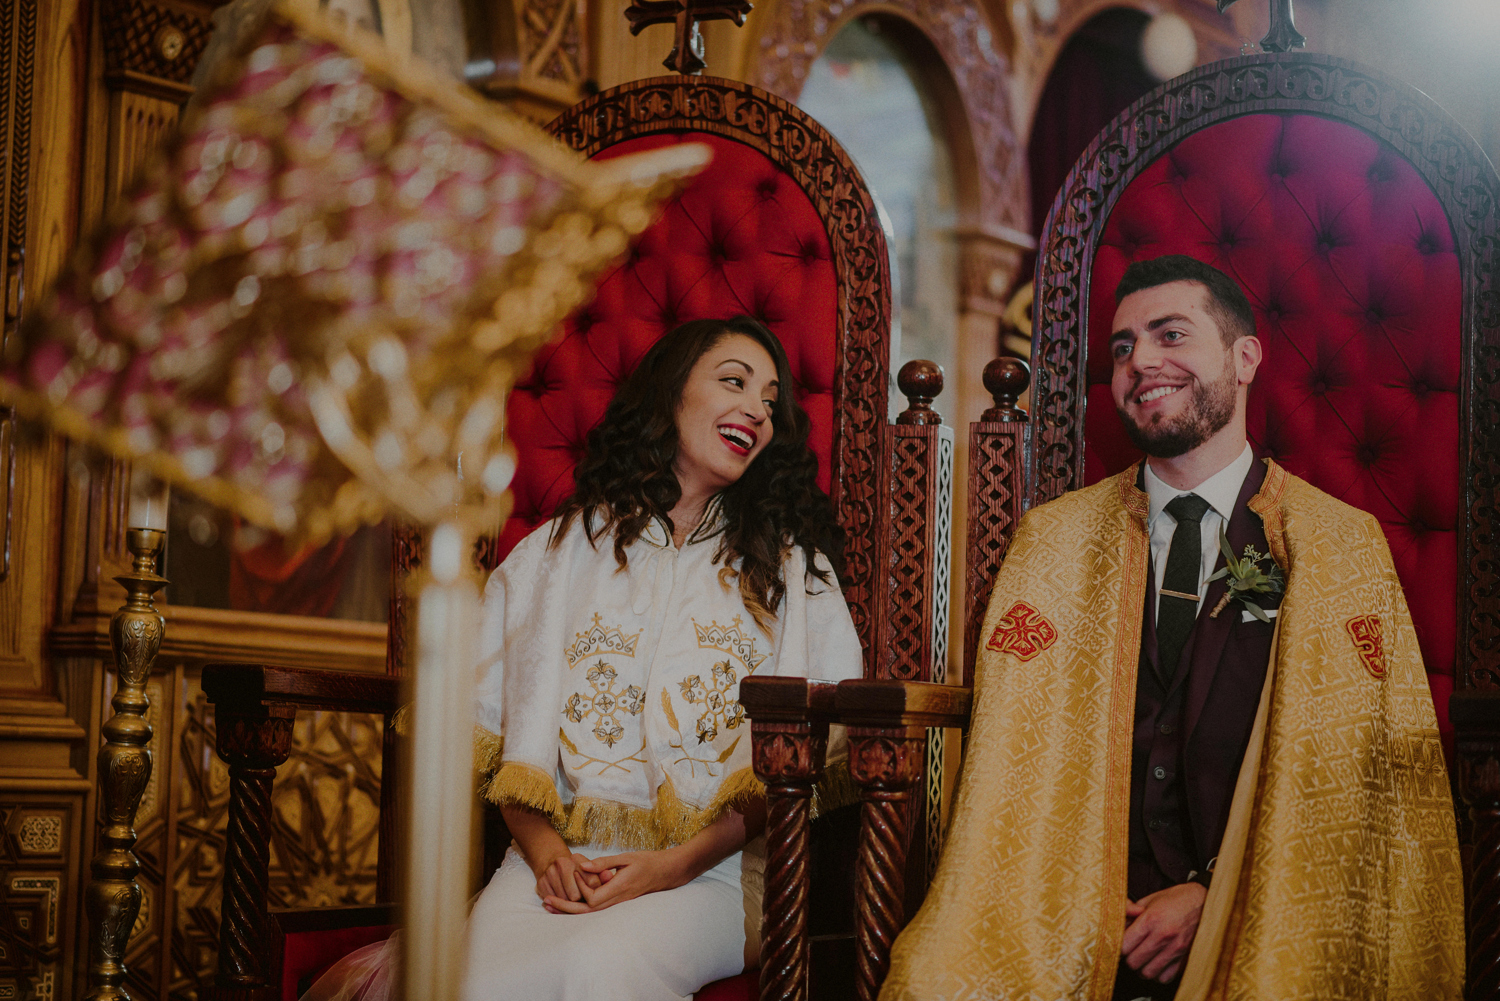 Multicultural wedding photos